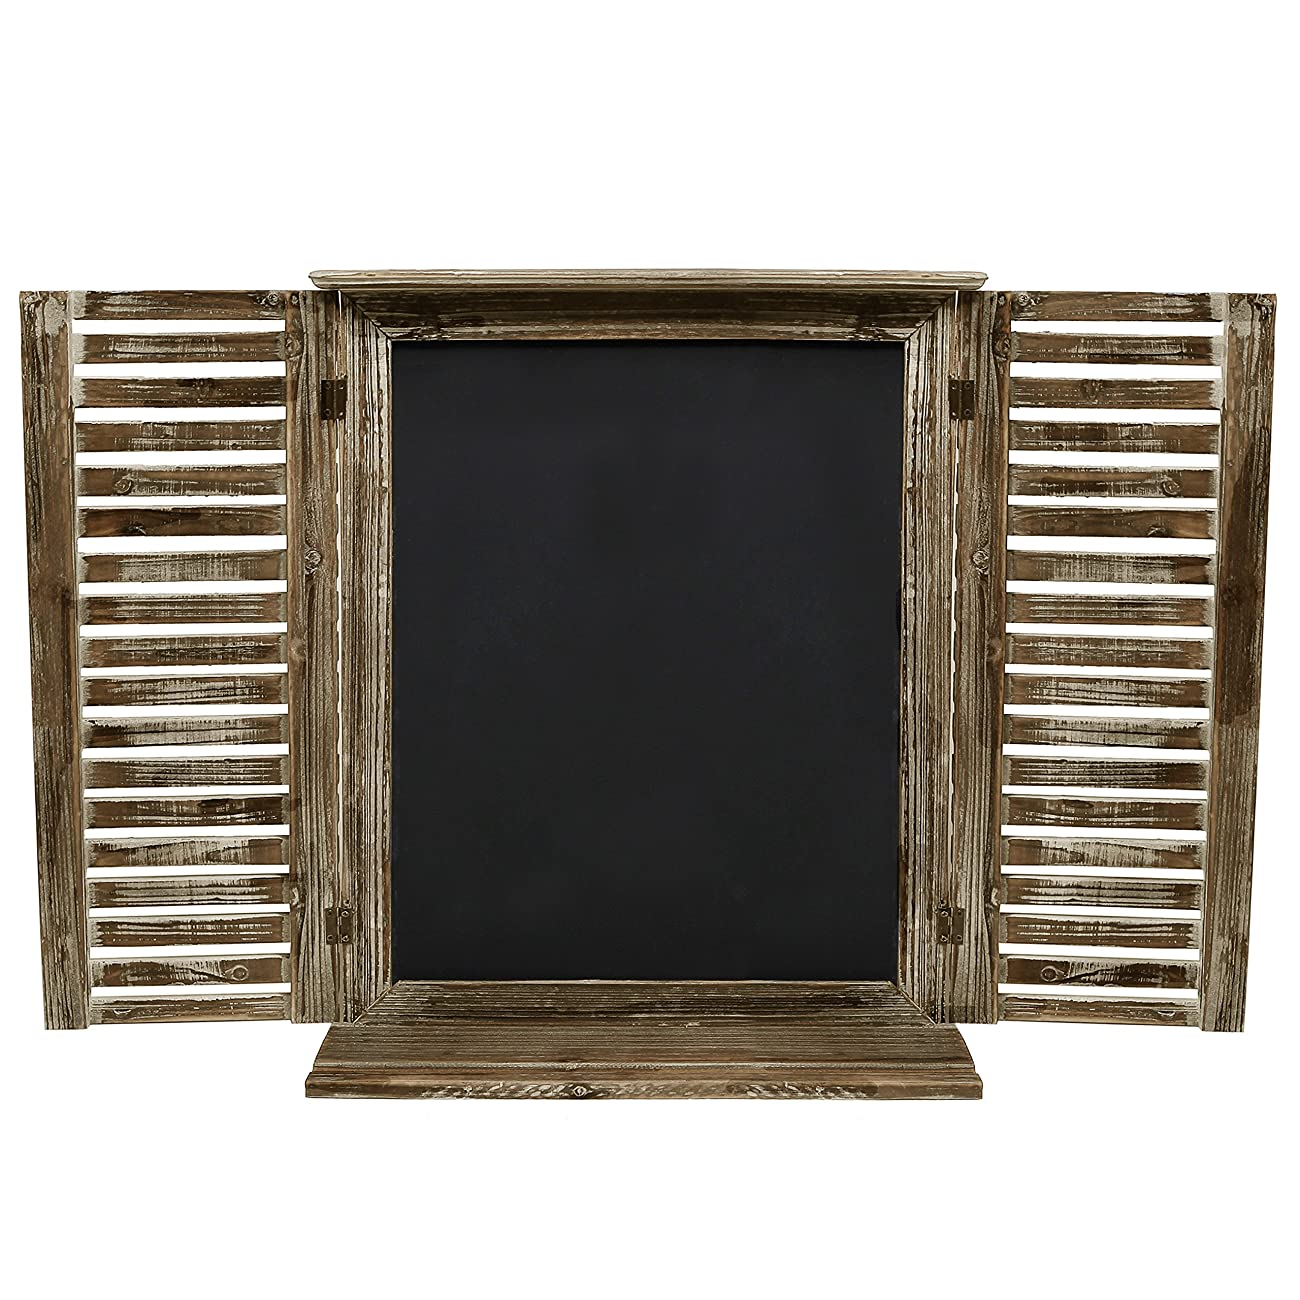 MyGift Rustic Standing Chalkboard with Folding Shutter Doors, Torched Wood Finish 2